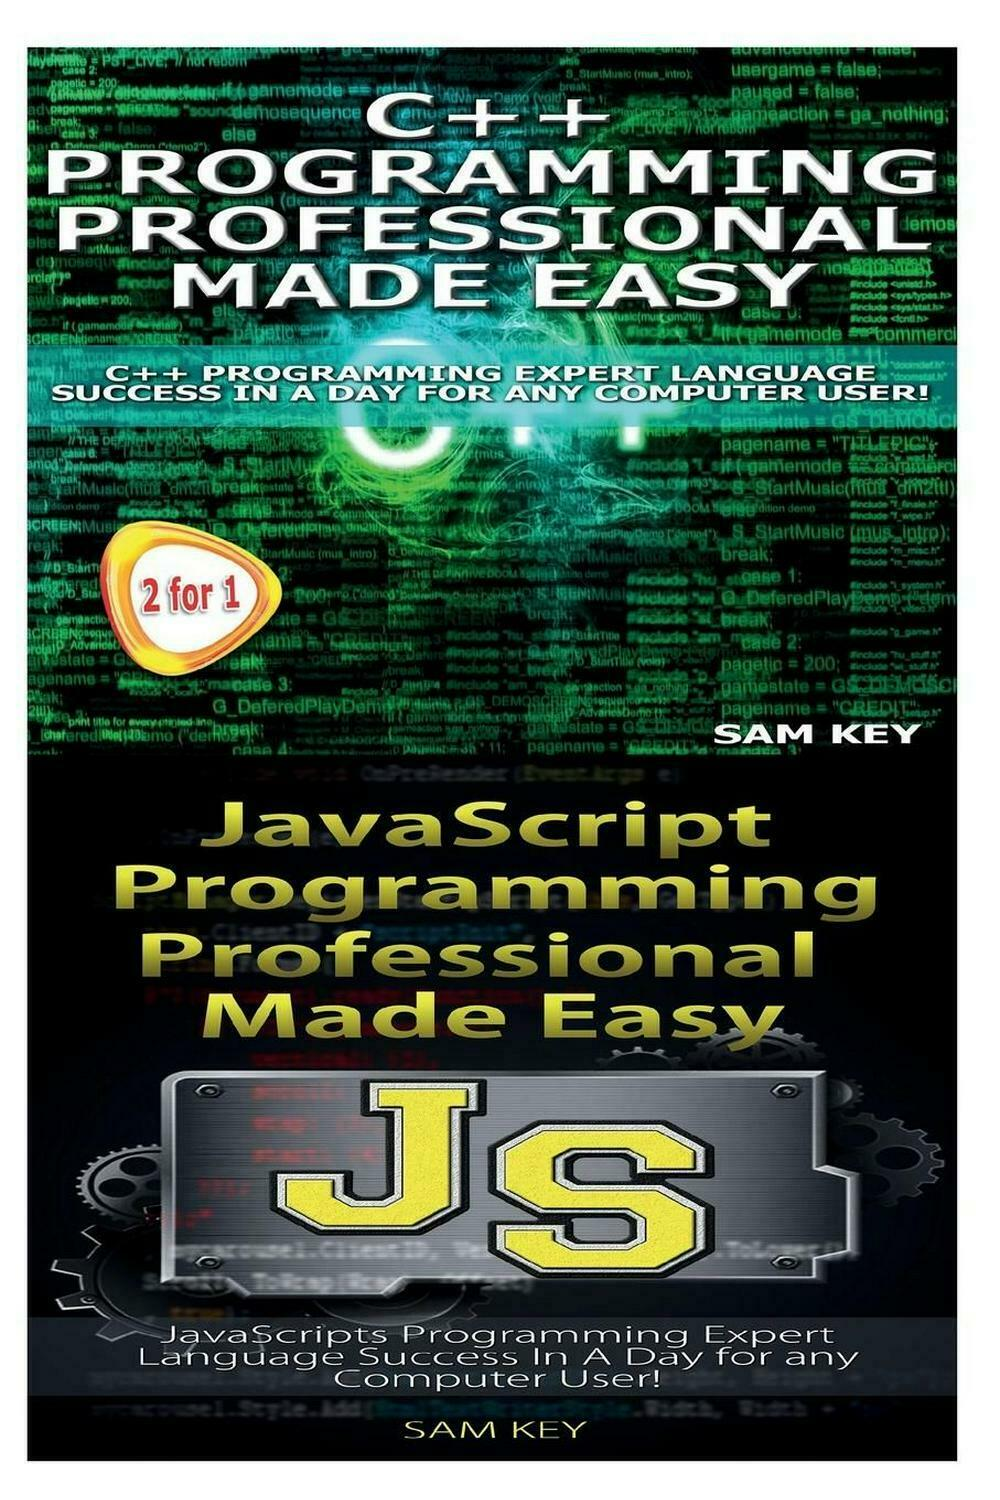 C++ Programming Professional Made Easy & JavaScript Professional Programming Mad |